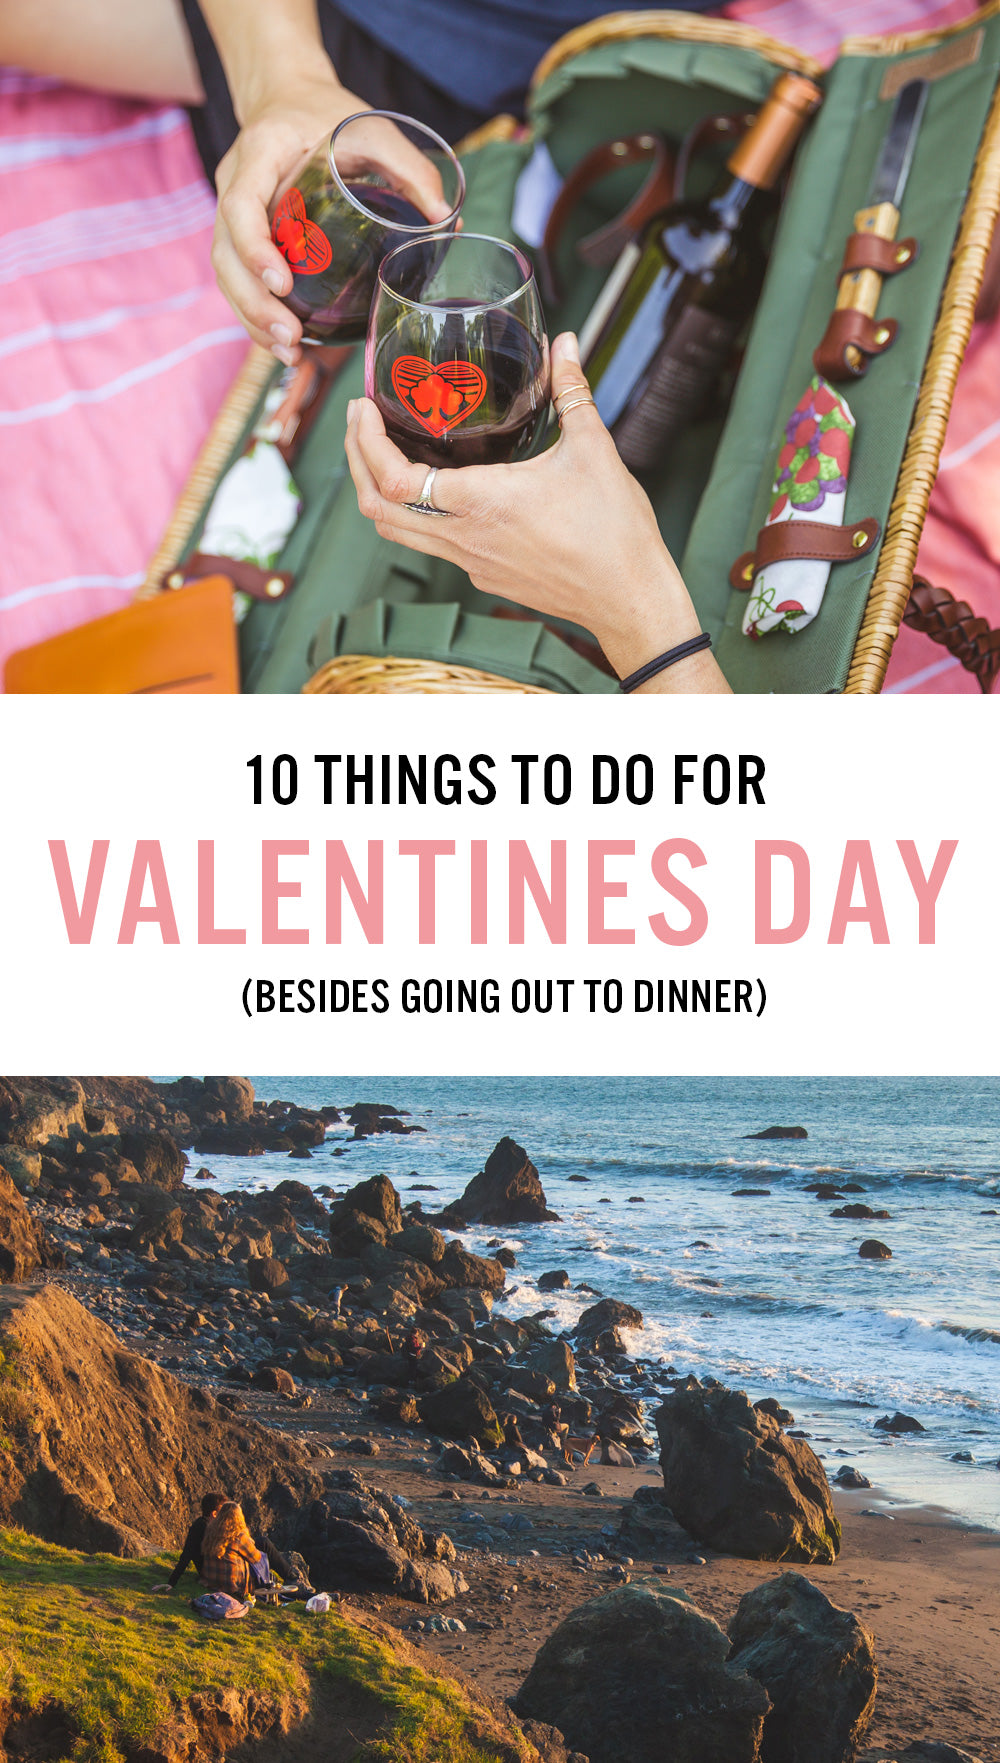 10 Things To Do For Valentines Day (Besides Going Out To Dinner)